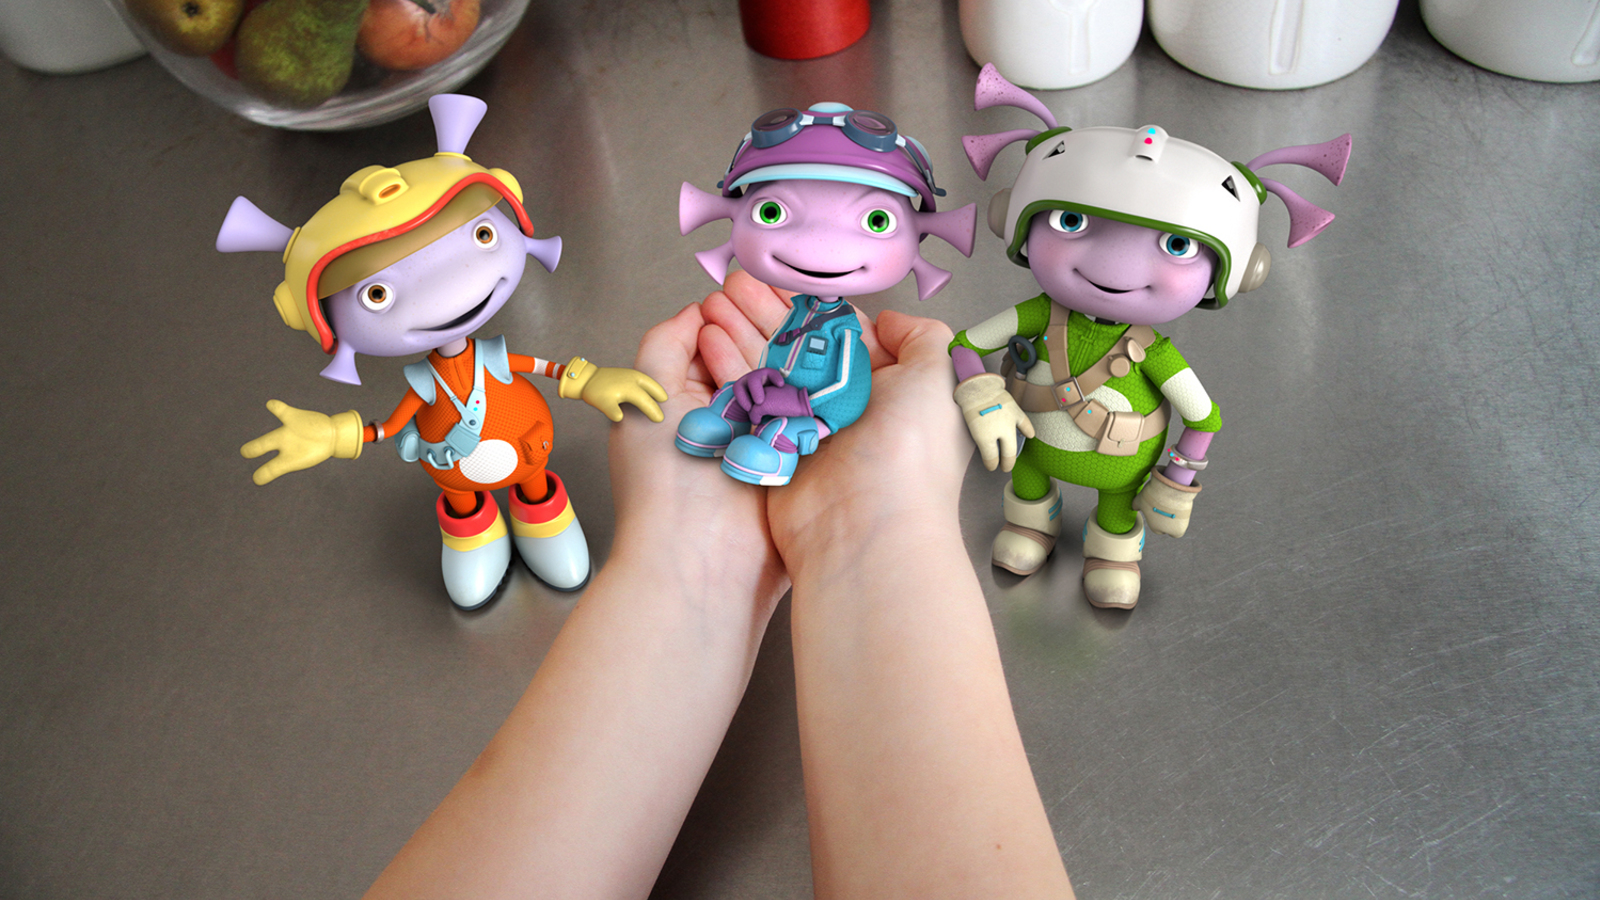 Floogals composited into kitchen scene